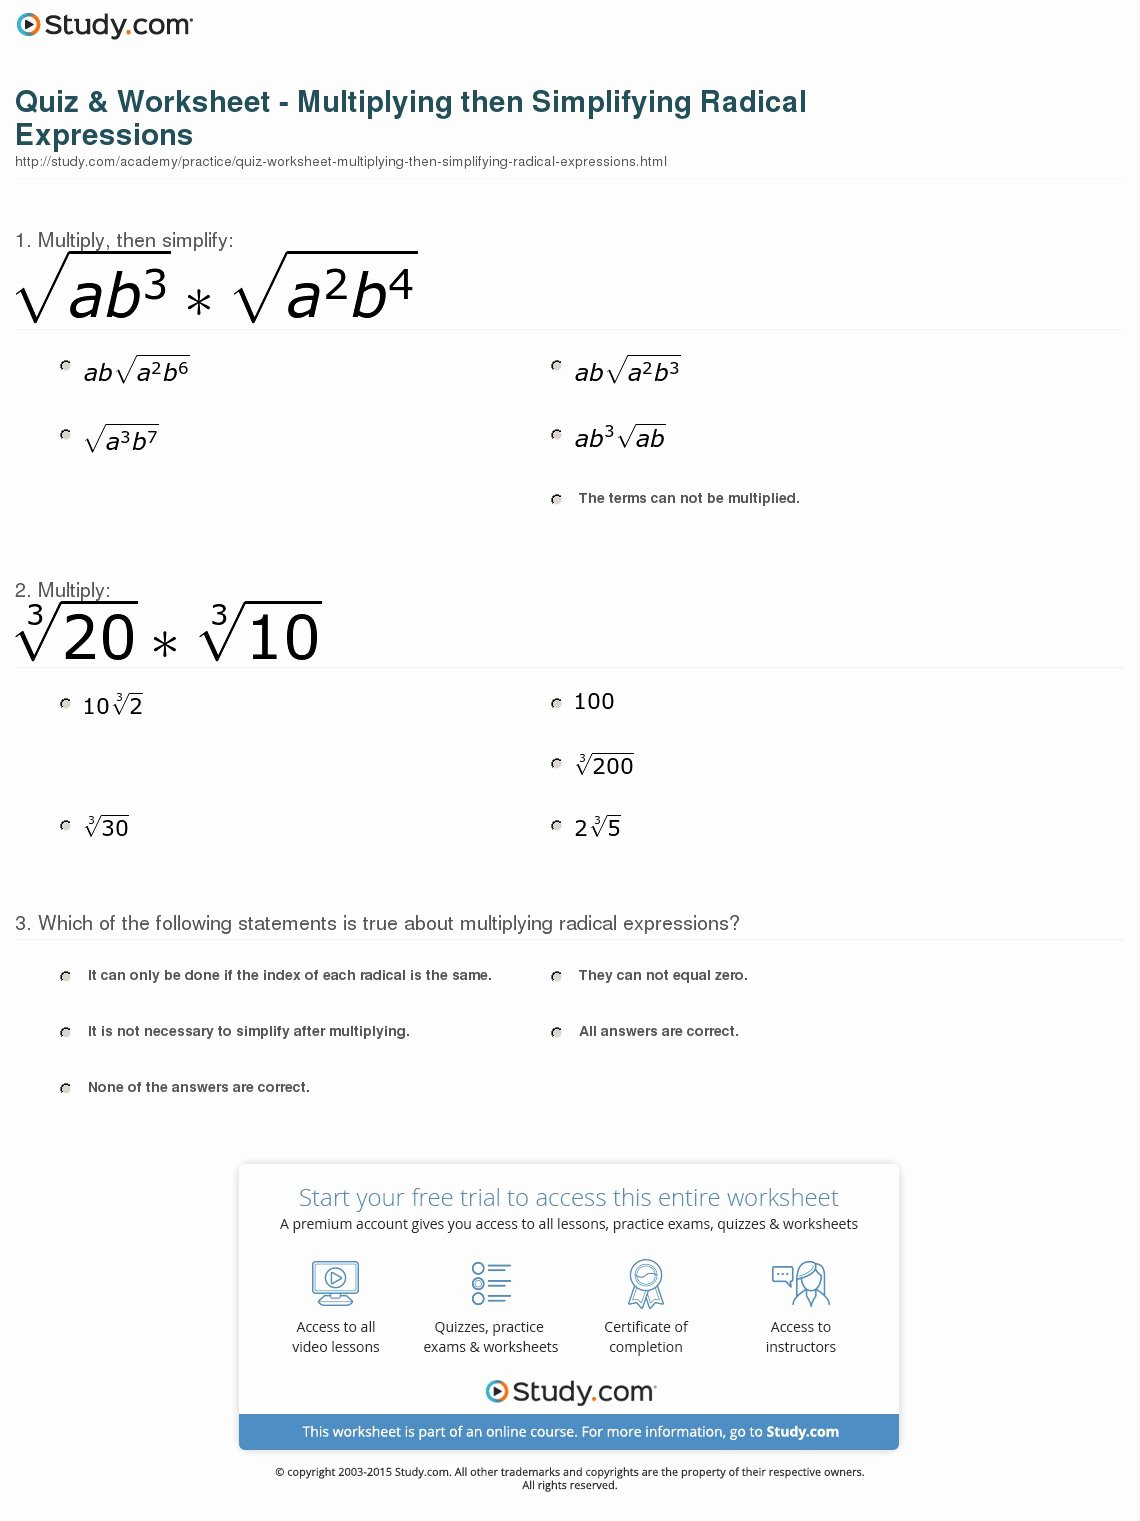 Simplifying Radical Expressions Worksheet Answers Luxury Quiz & Worksheet Multiplying then Simplifying Radical